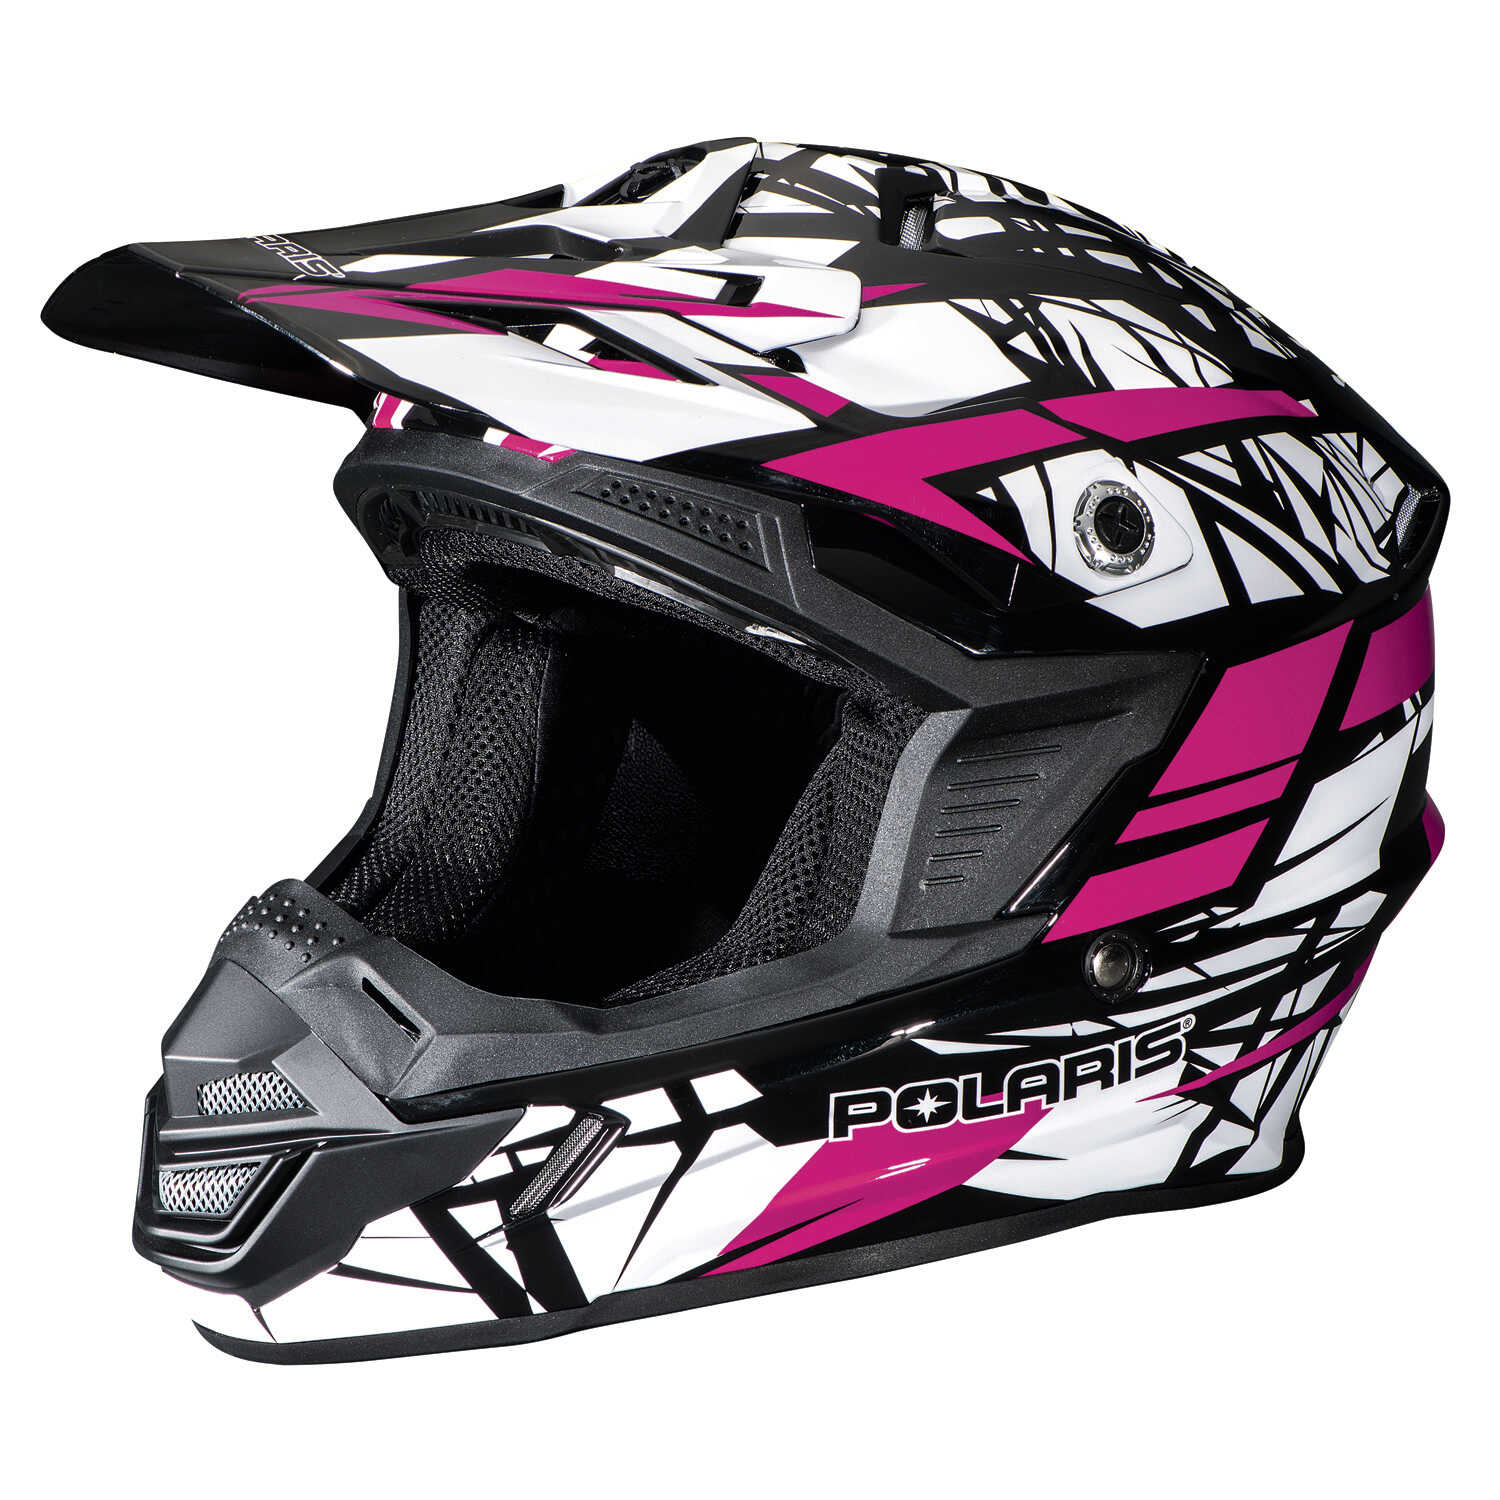 Tenacity Adult Moto Helmet with Removable Liner, Pink